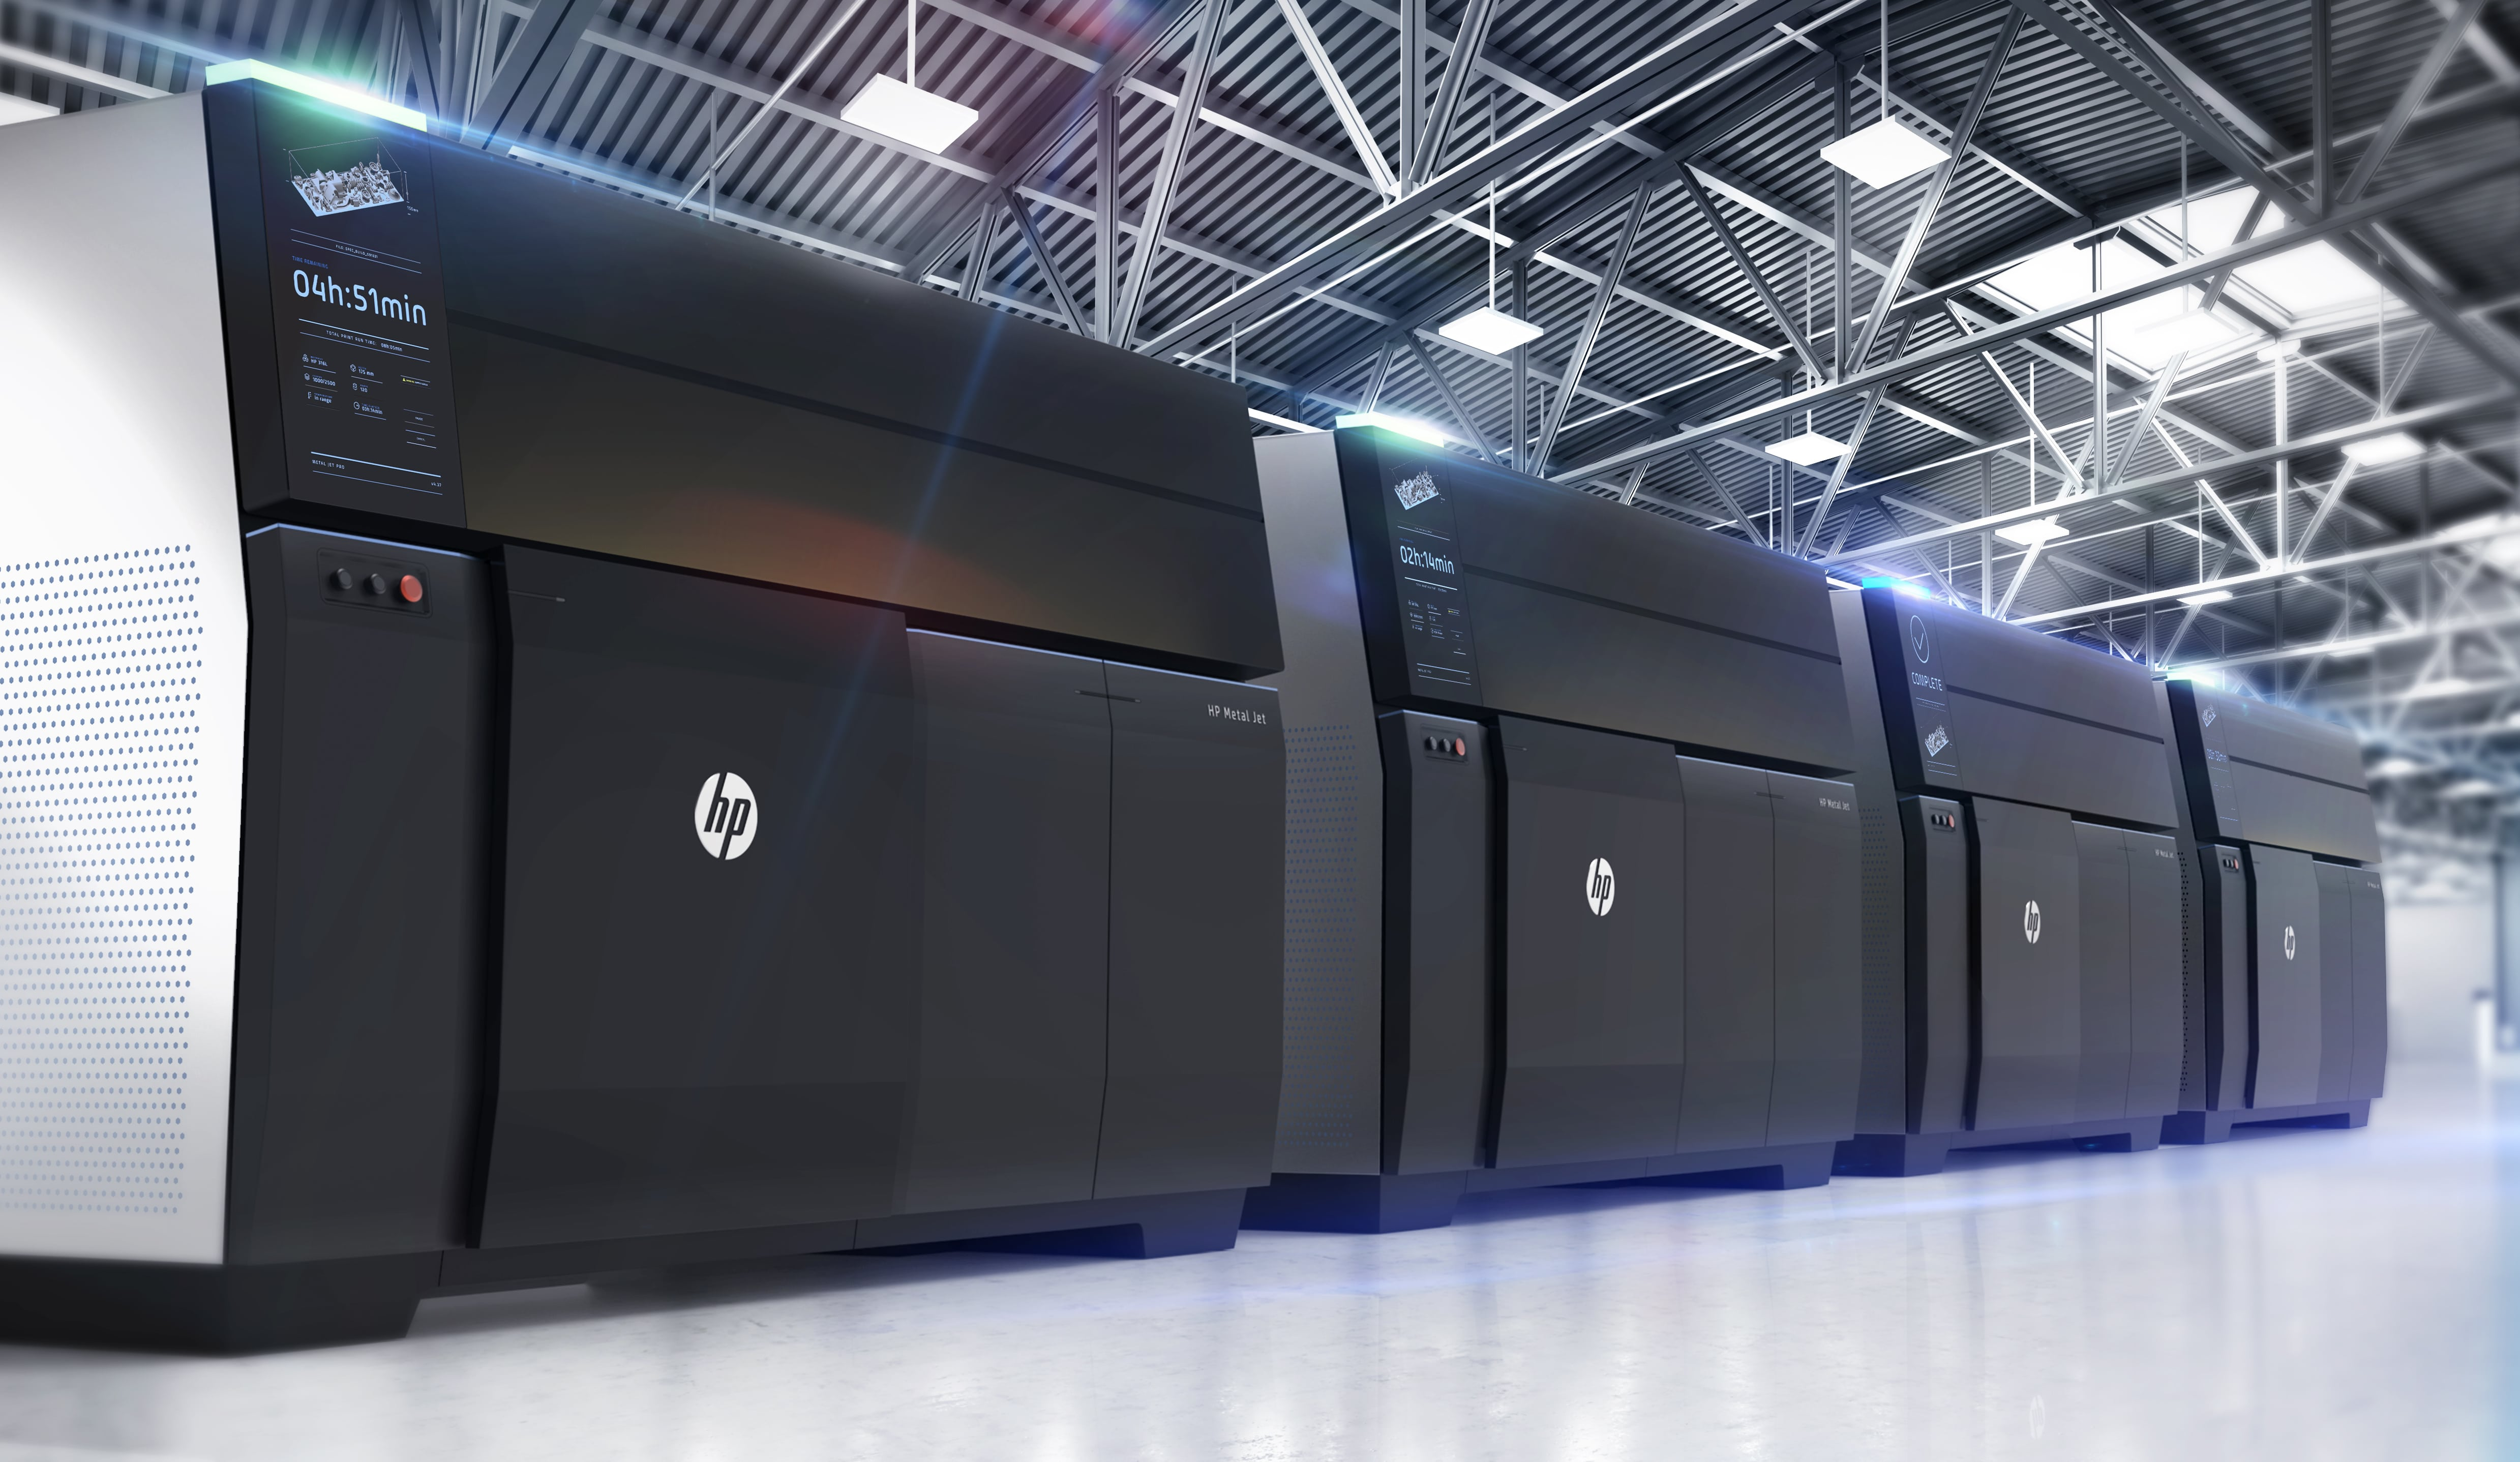 HP launches world's most advanced metals 3D printing technology for mass production to accelerate 4th industrial revolution